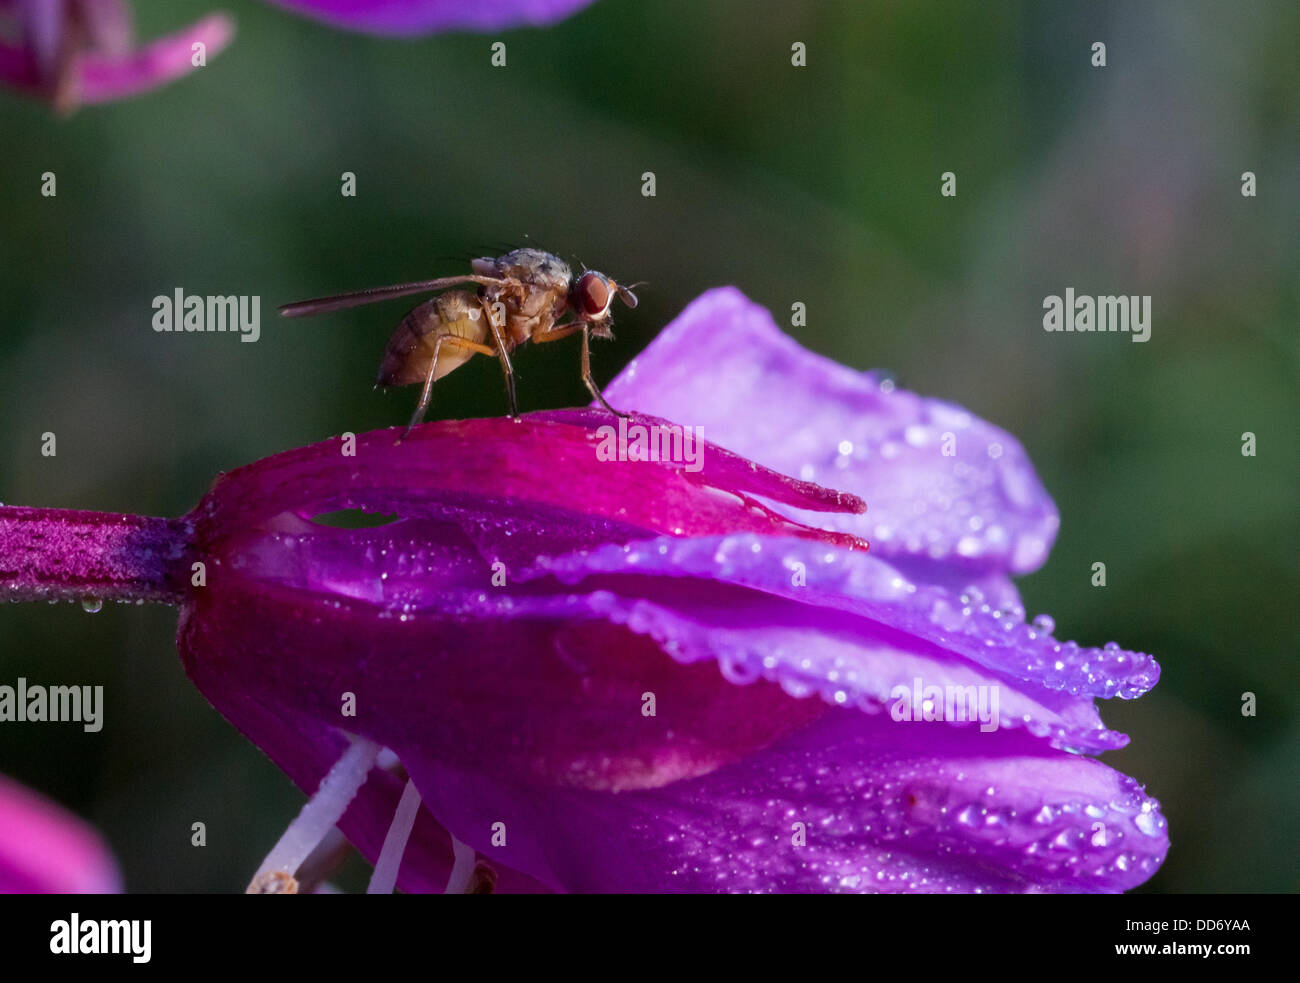 fly on willow-herb blossom, epilobium sp. - Stock Image